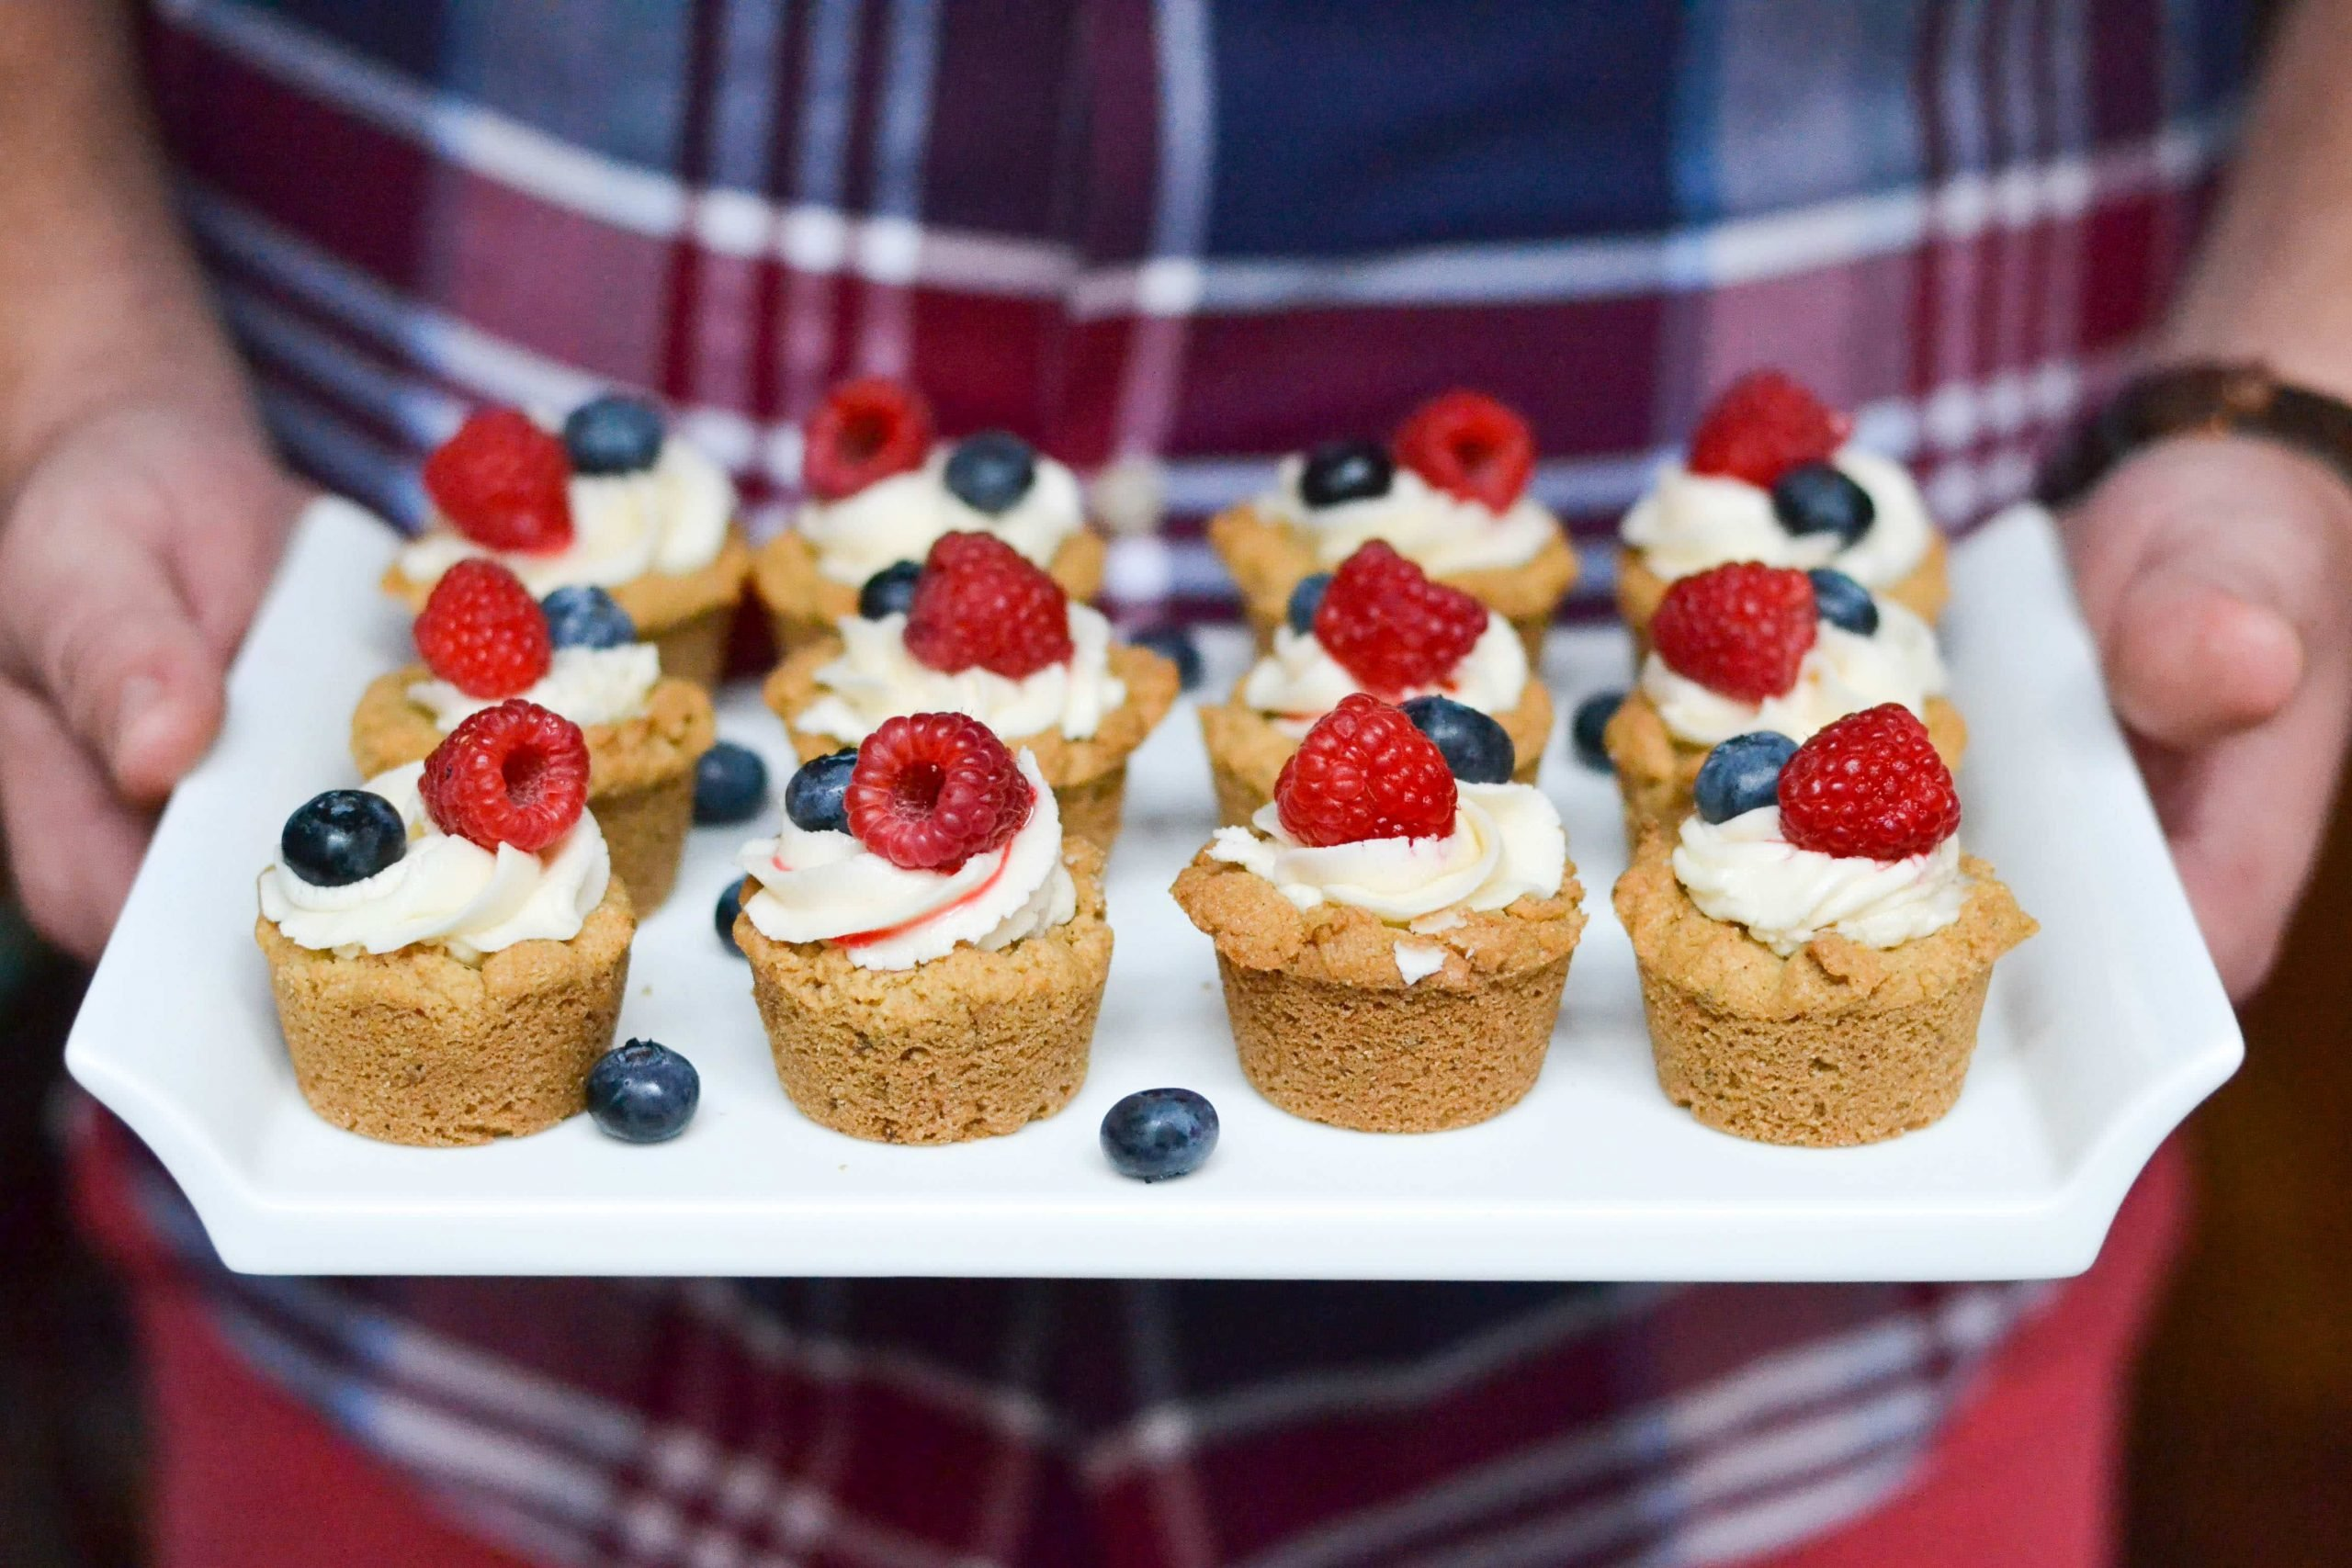 A person holding a platter of mini cookie cups topped with buttercream, raspberries and blueberries.